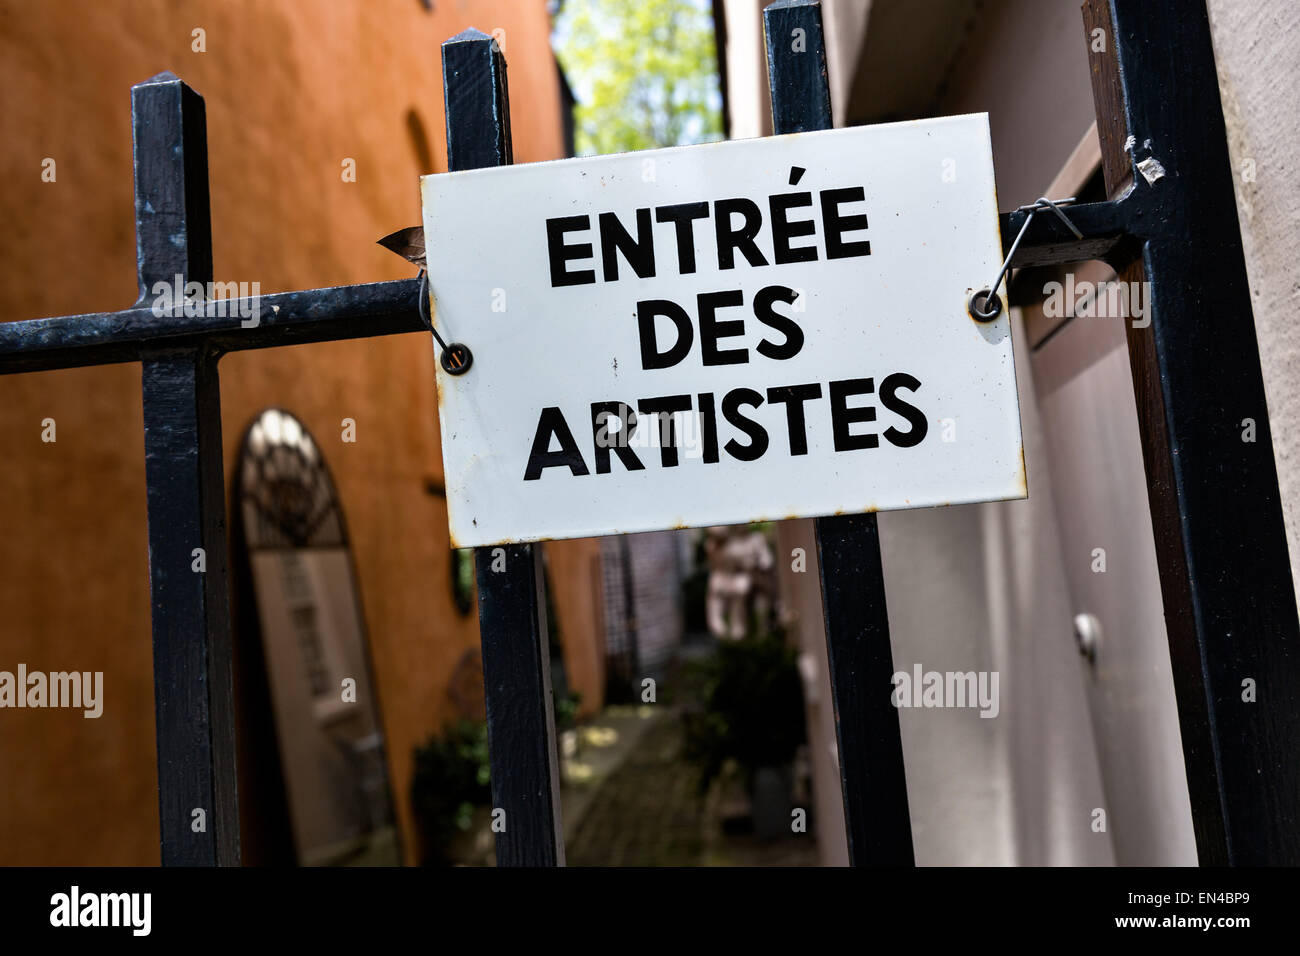 Entree des artistes sign in the French Quarter along Church Street in historic Charleston, SC. - Stock Image